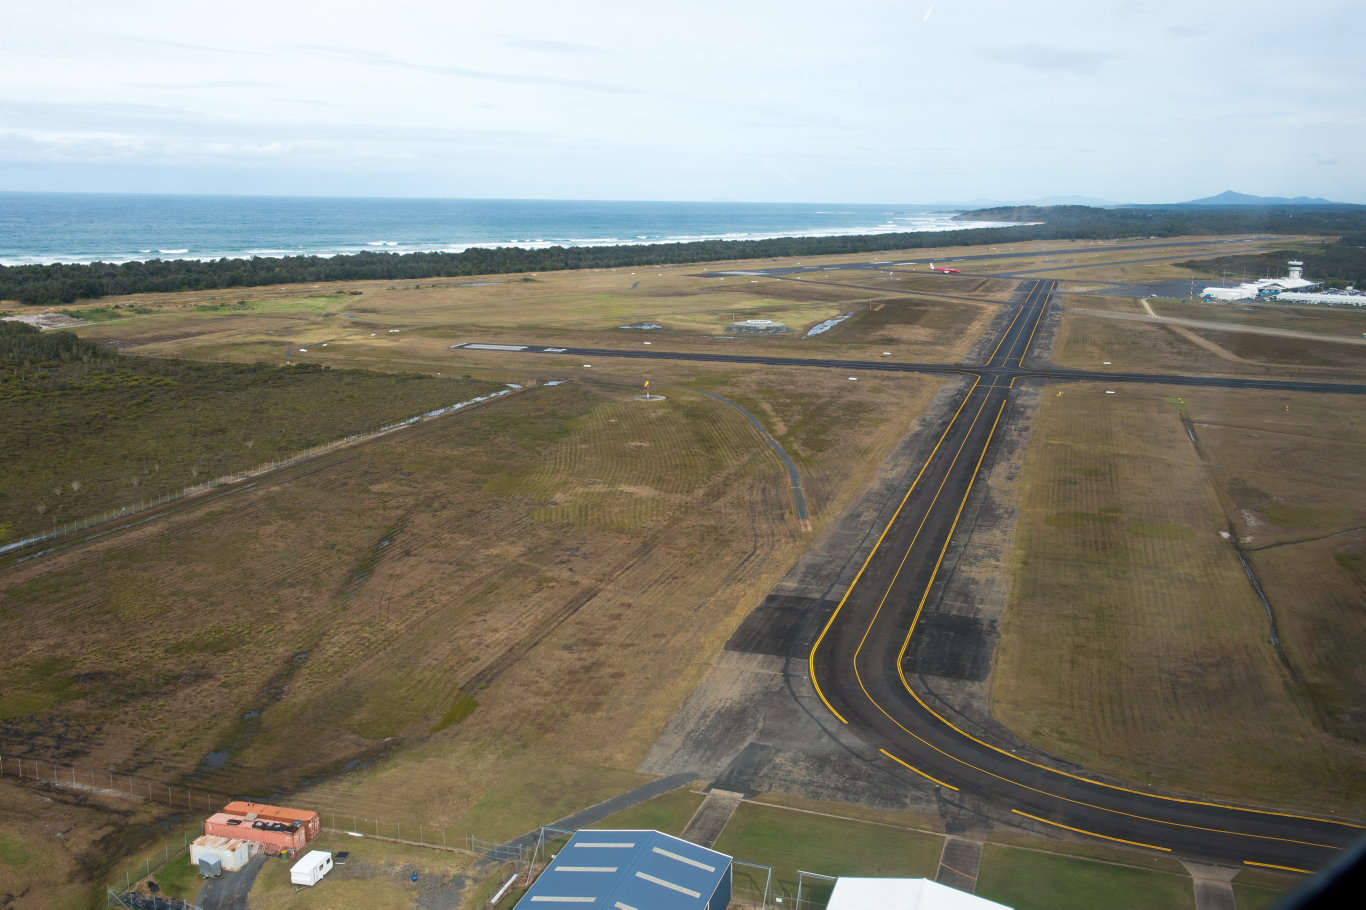 Aerials Coffs harbour from westpac helicopter.airport coffs harbourPhoto: Trevor Veale / The Coffs Coast Advocate